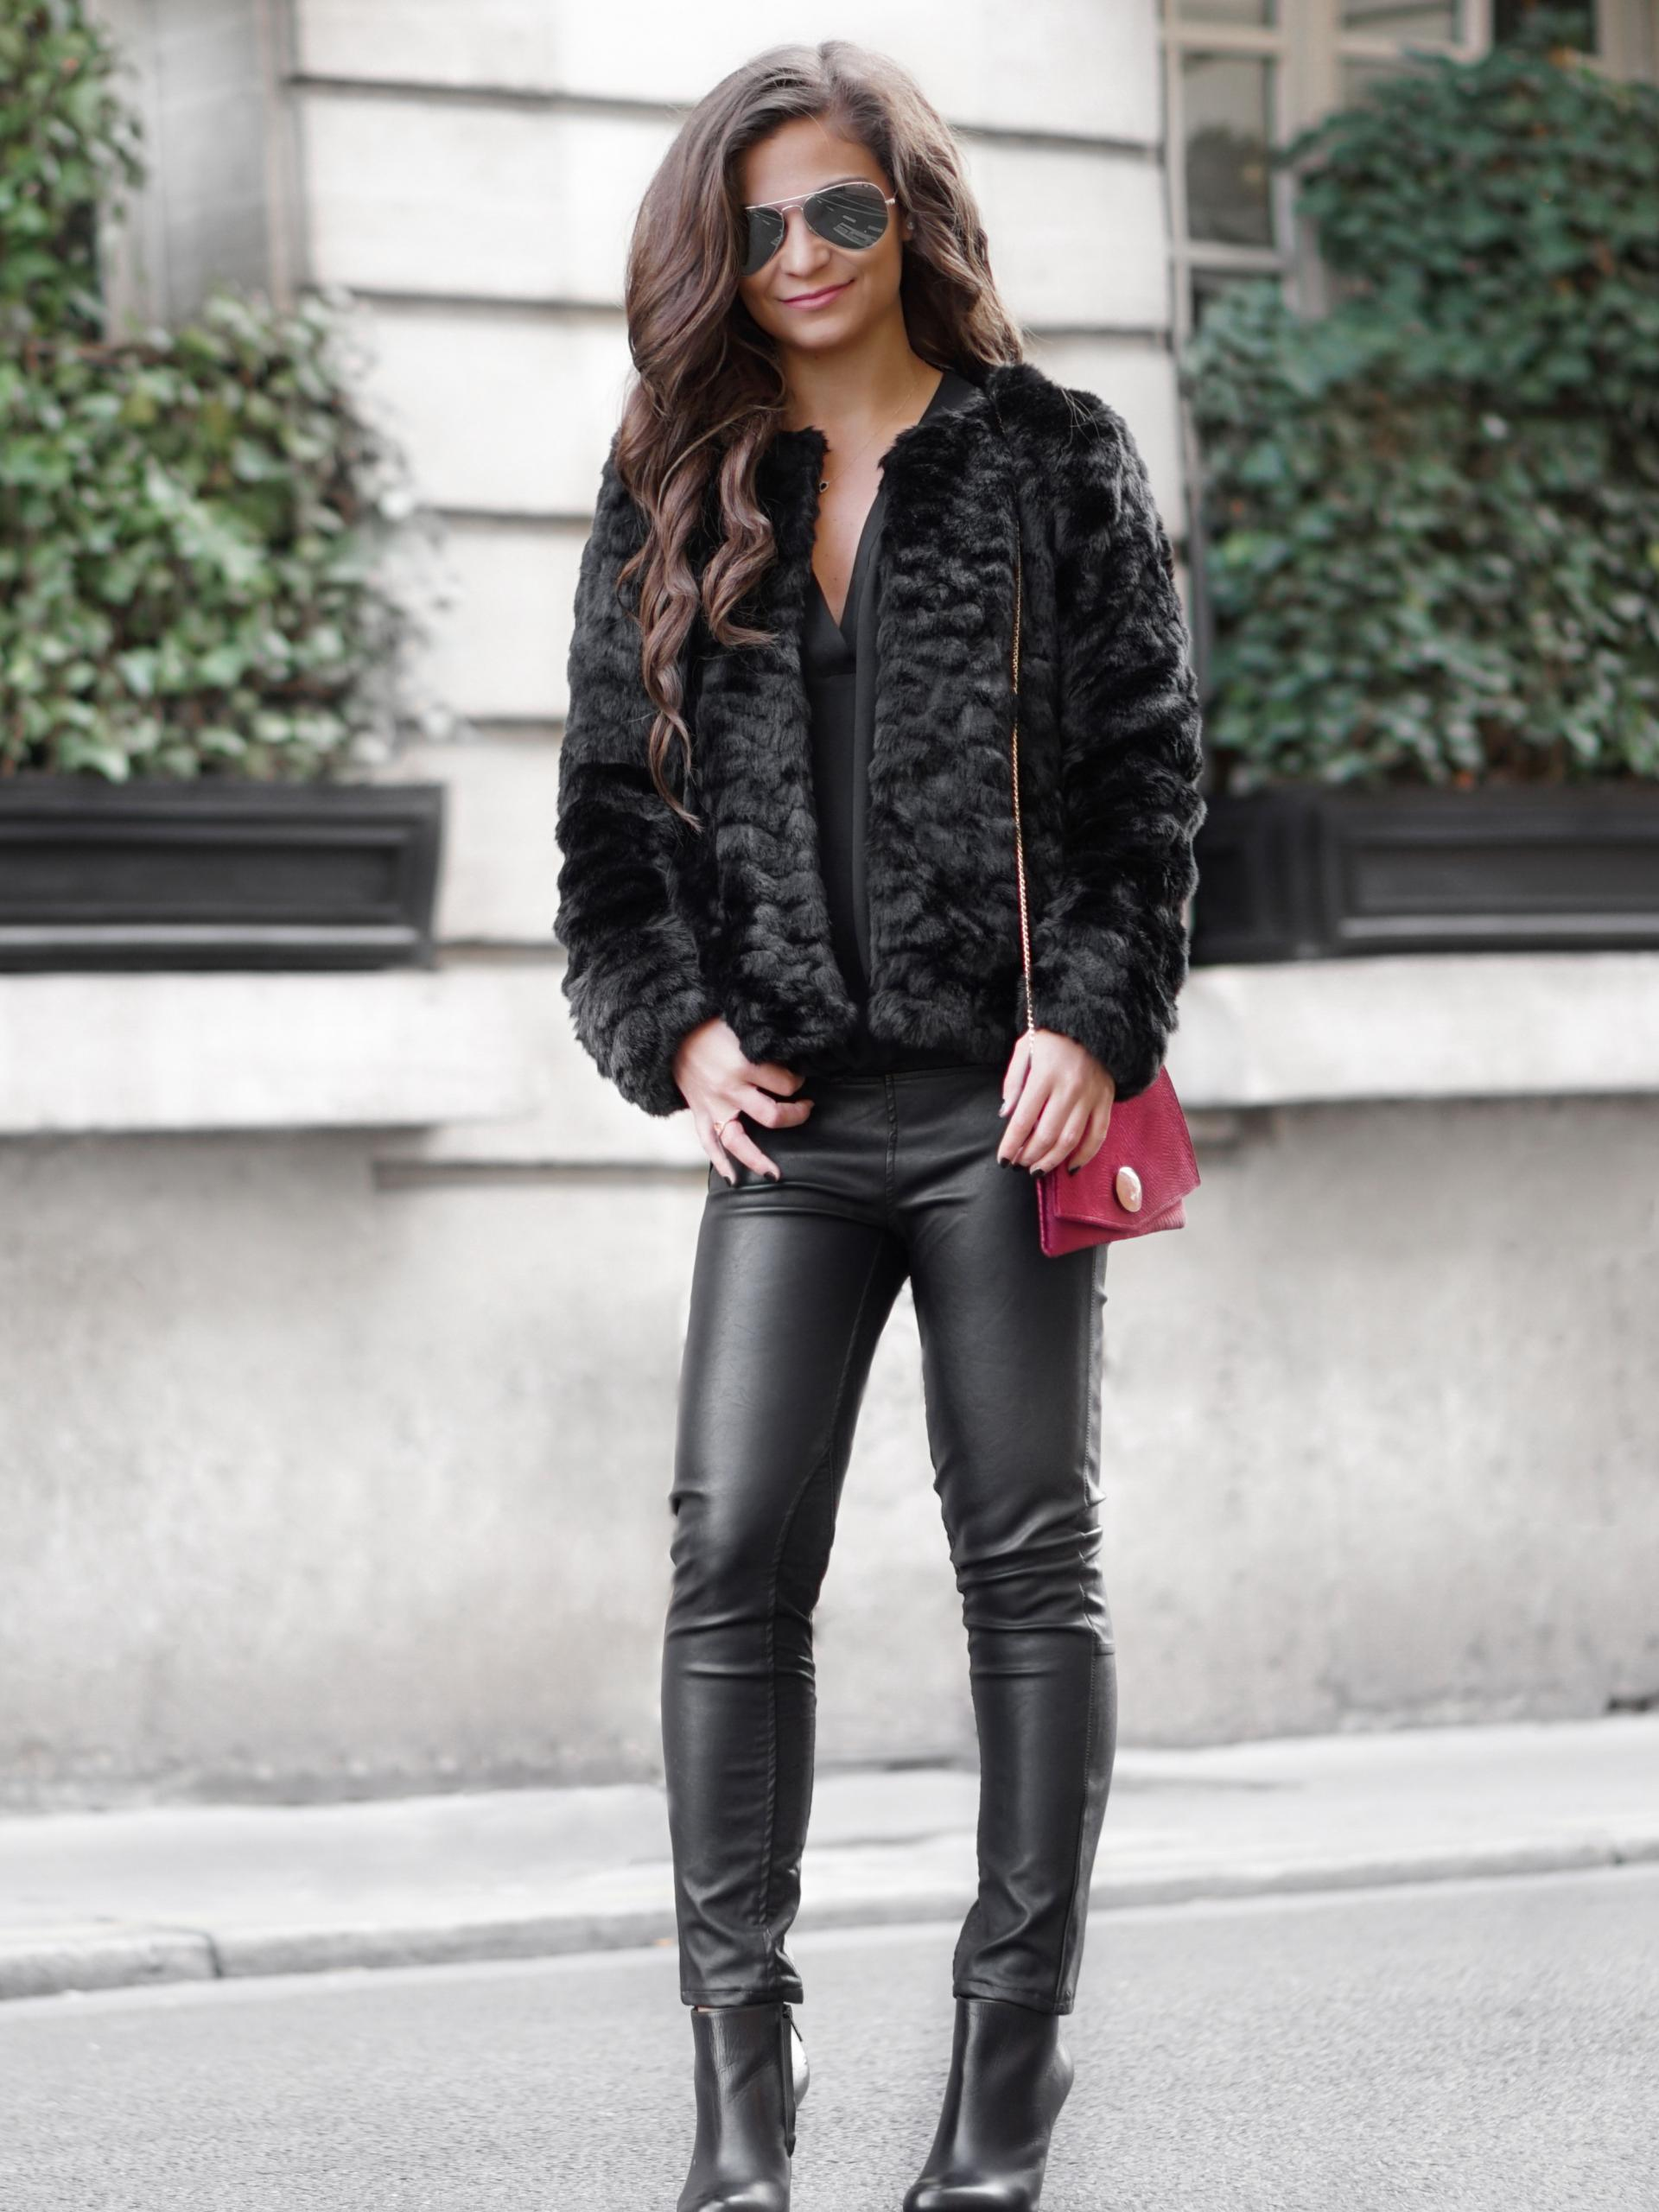 faux fur jacket and leather pants